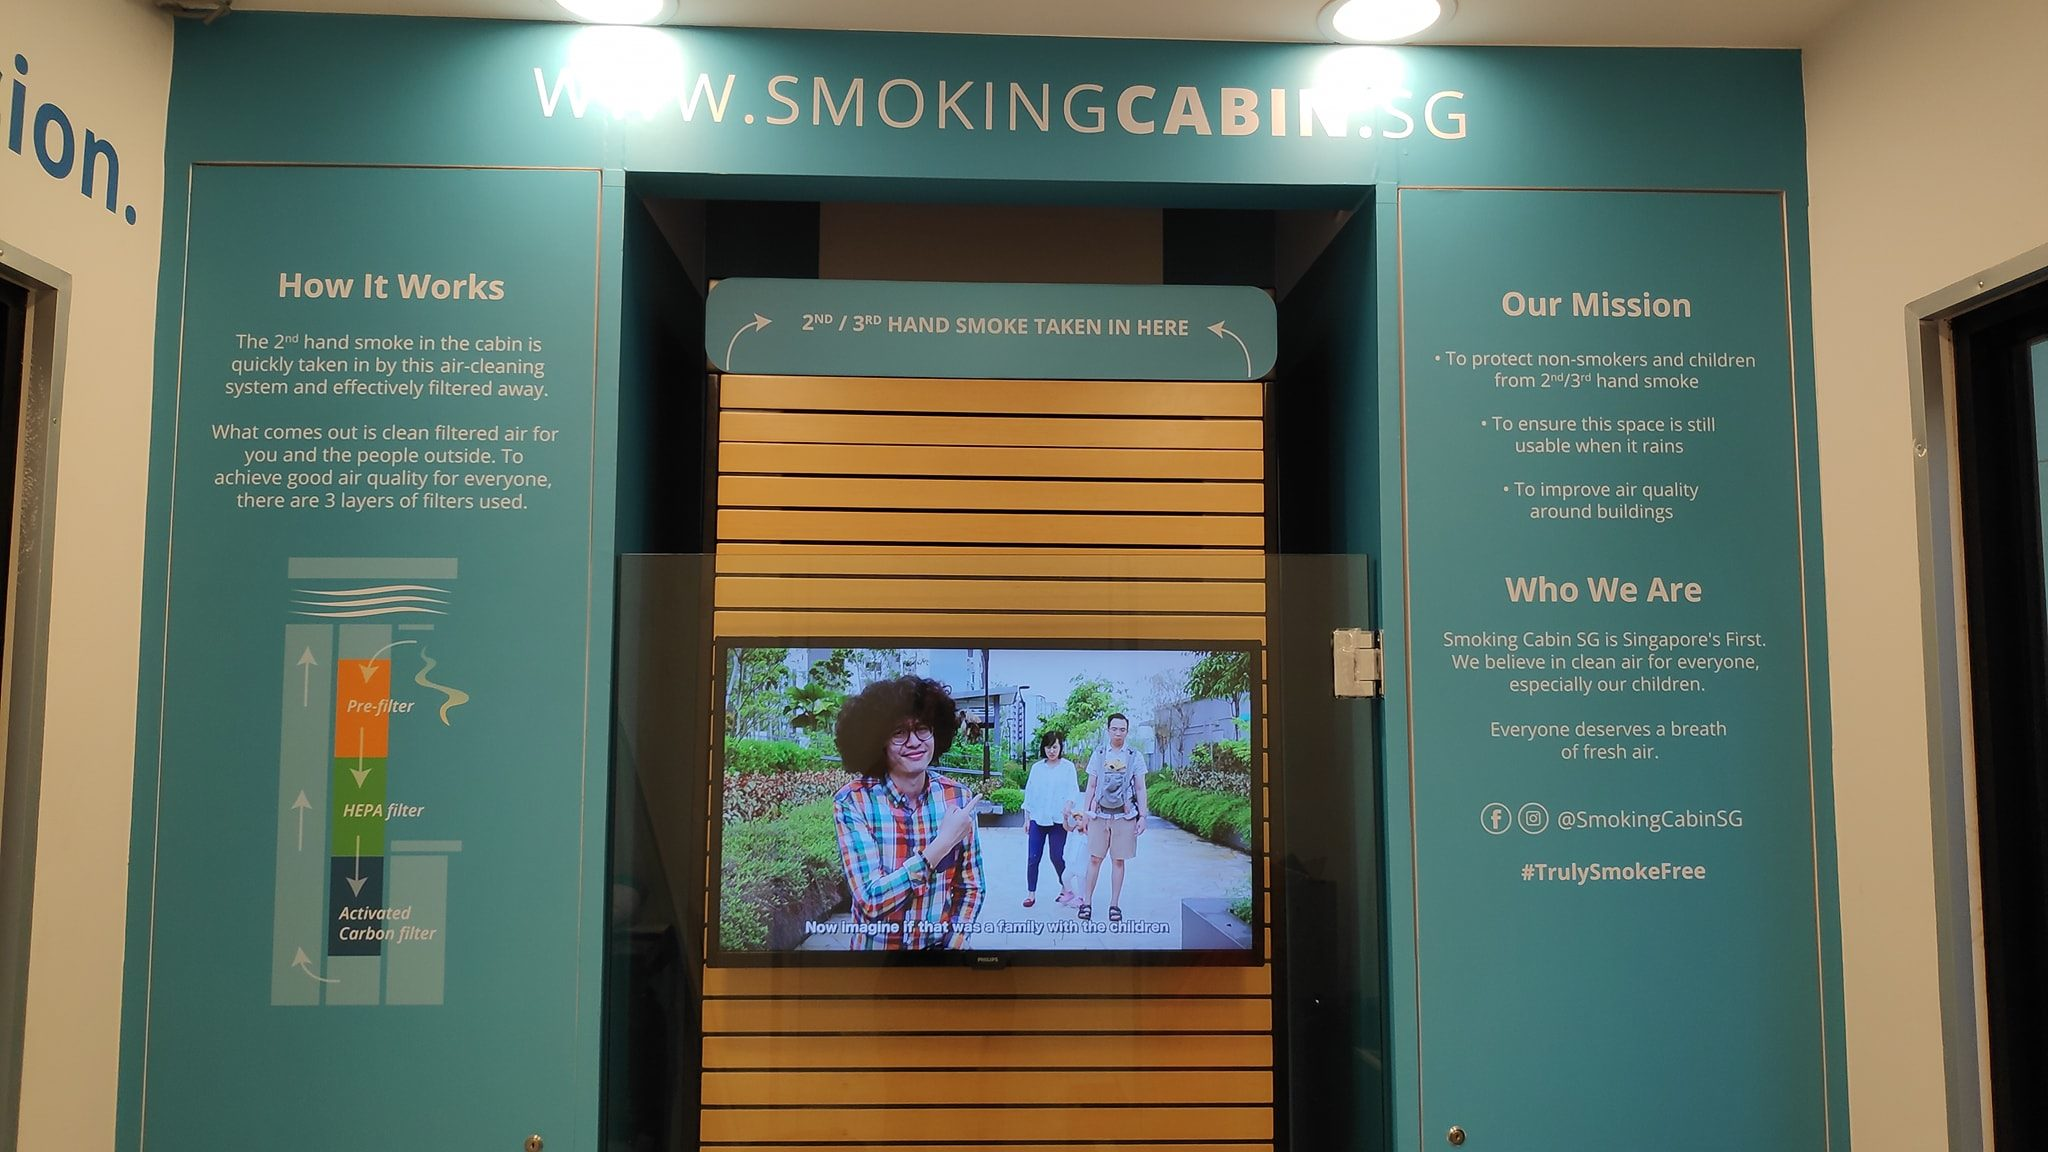 Image from Smoking Cabin SG/Facebook